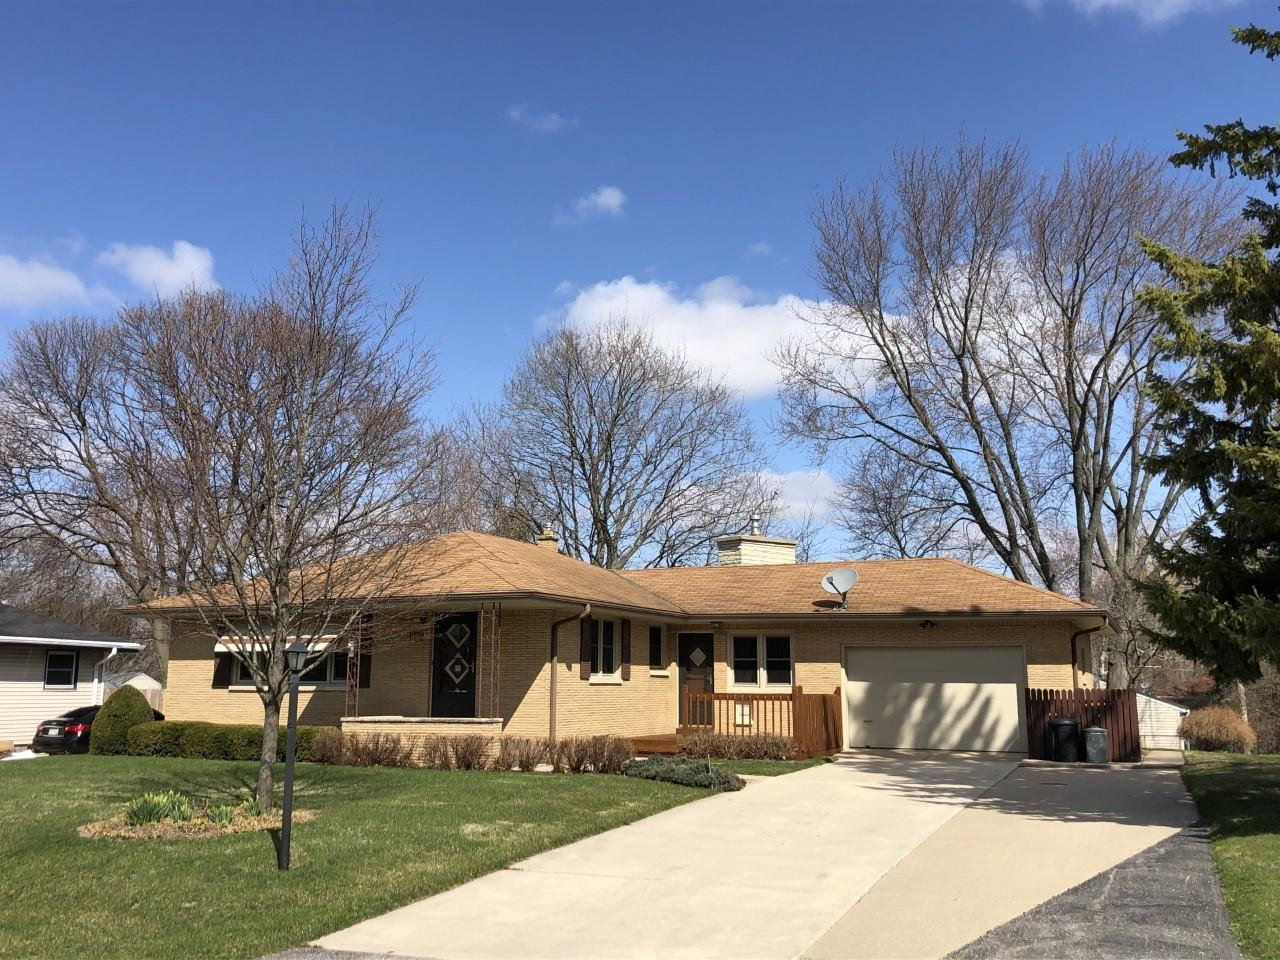 4600 W Fountain Ave AVENUE, BROWN DEER, WI 53223